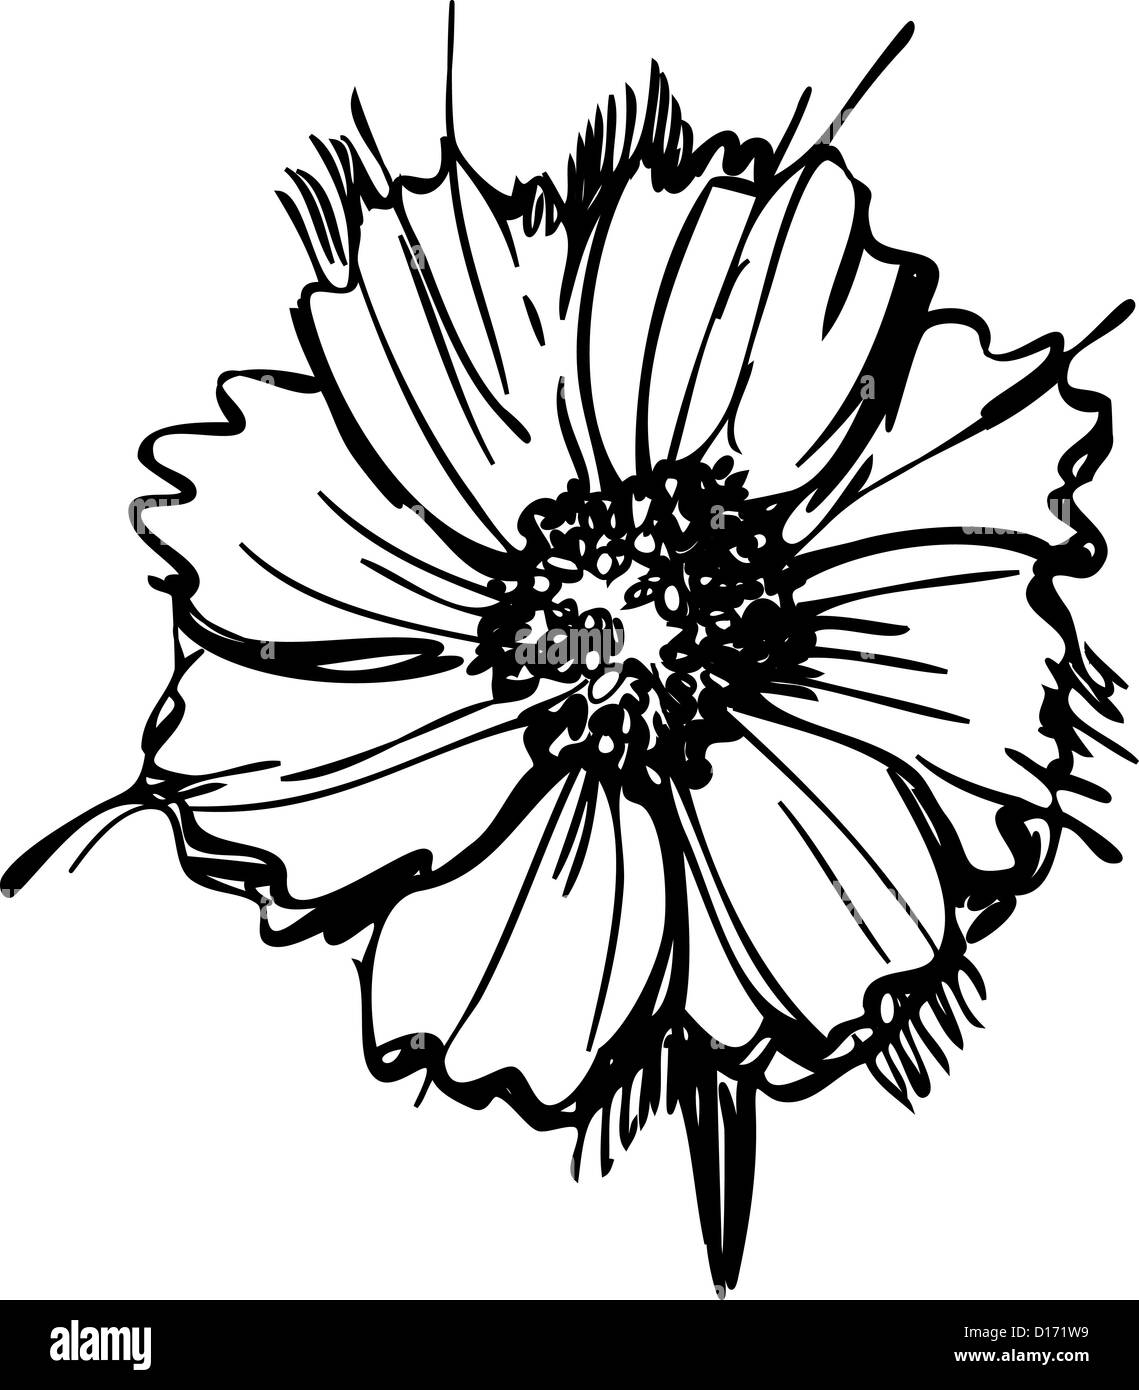 a sketch stock photos a sketch stock images alamy Walmart Etch a Sketch a sketch wild flower resembling a daisy stock image